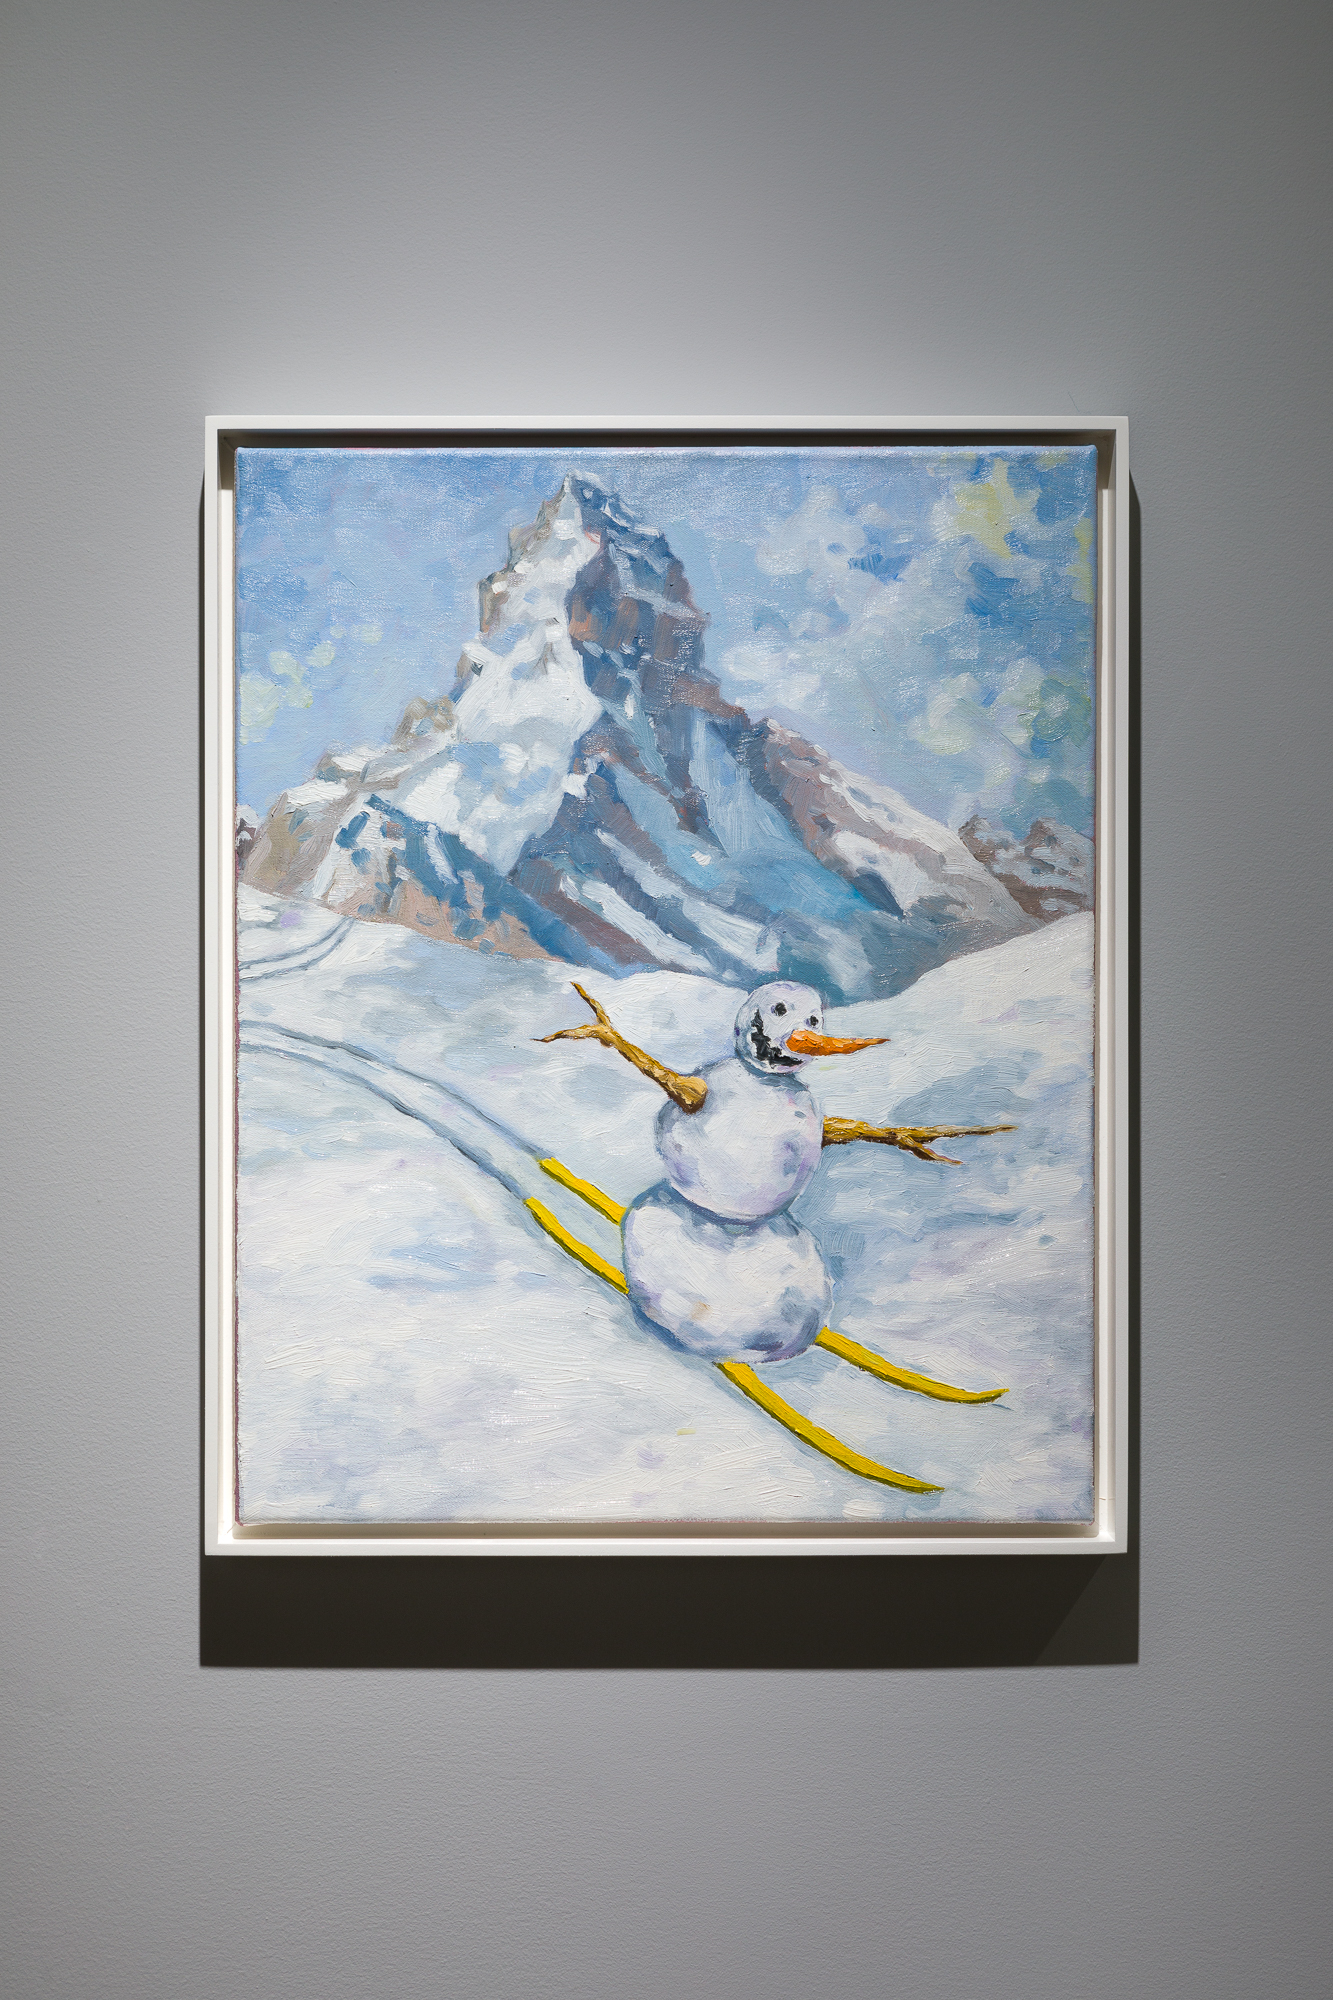 Skiing Snowman: Jan Kiefer Swiss Institute